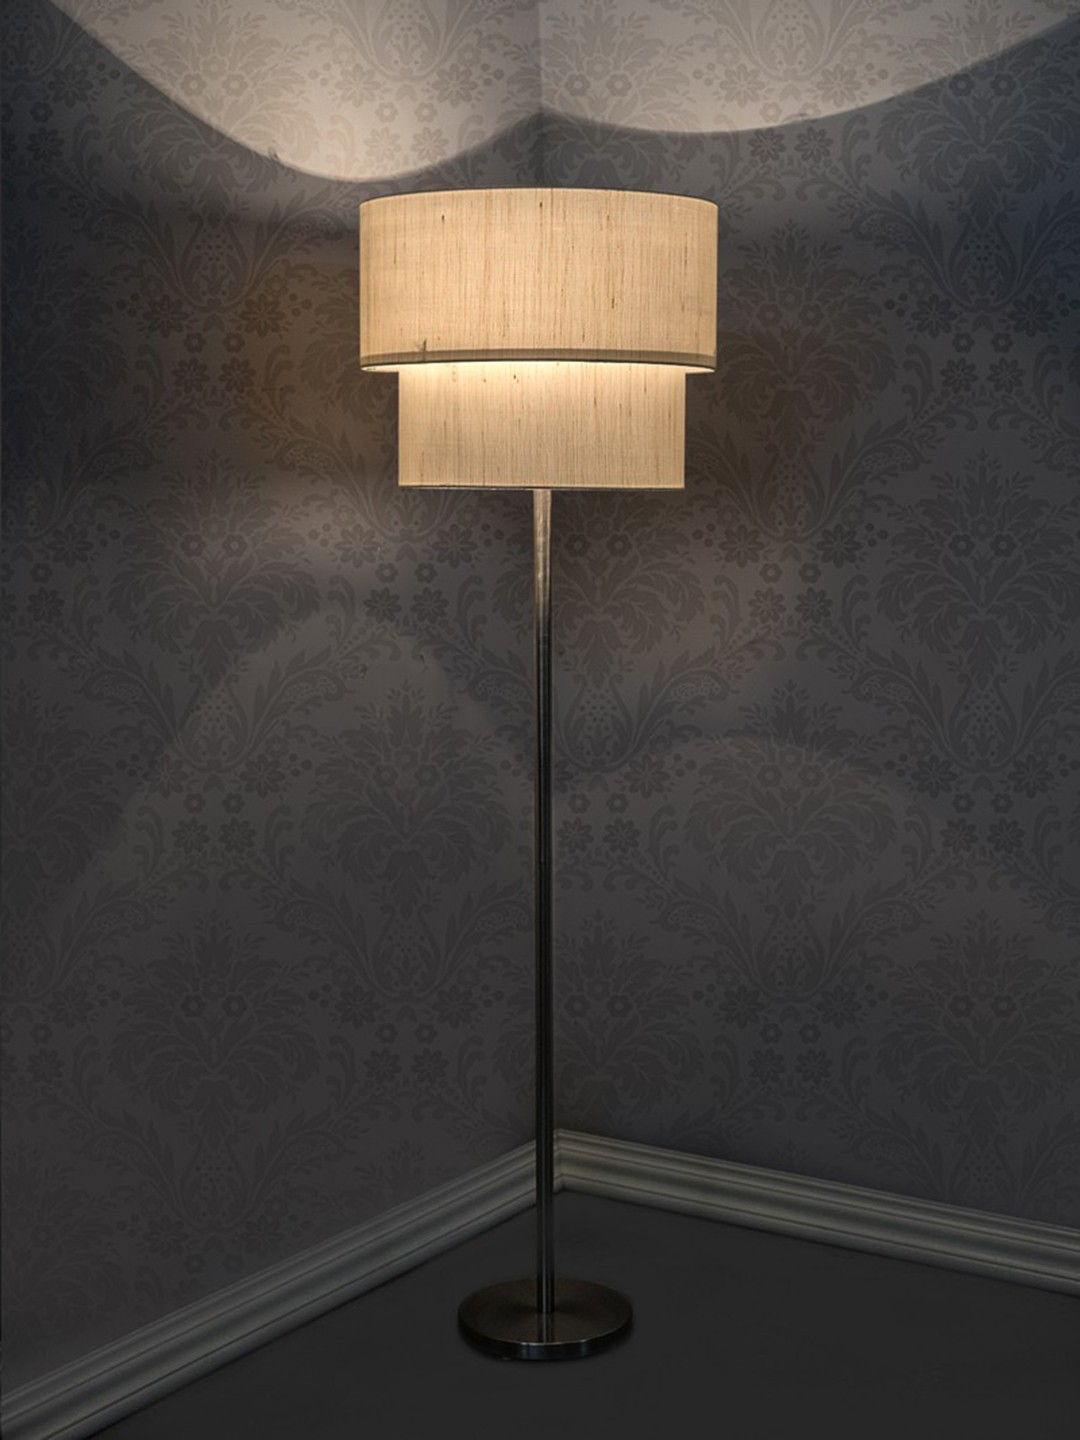 Double Drum Ivory Floor Lamp - 15 inches